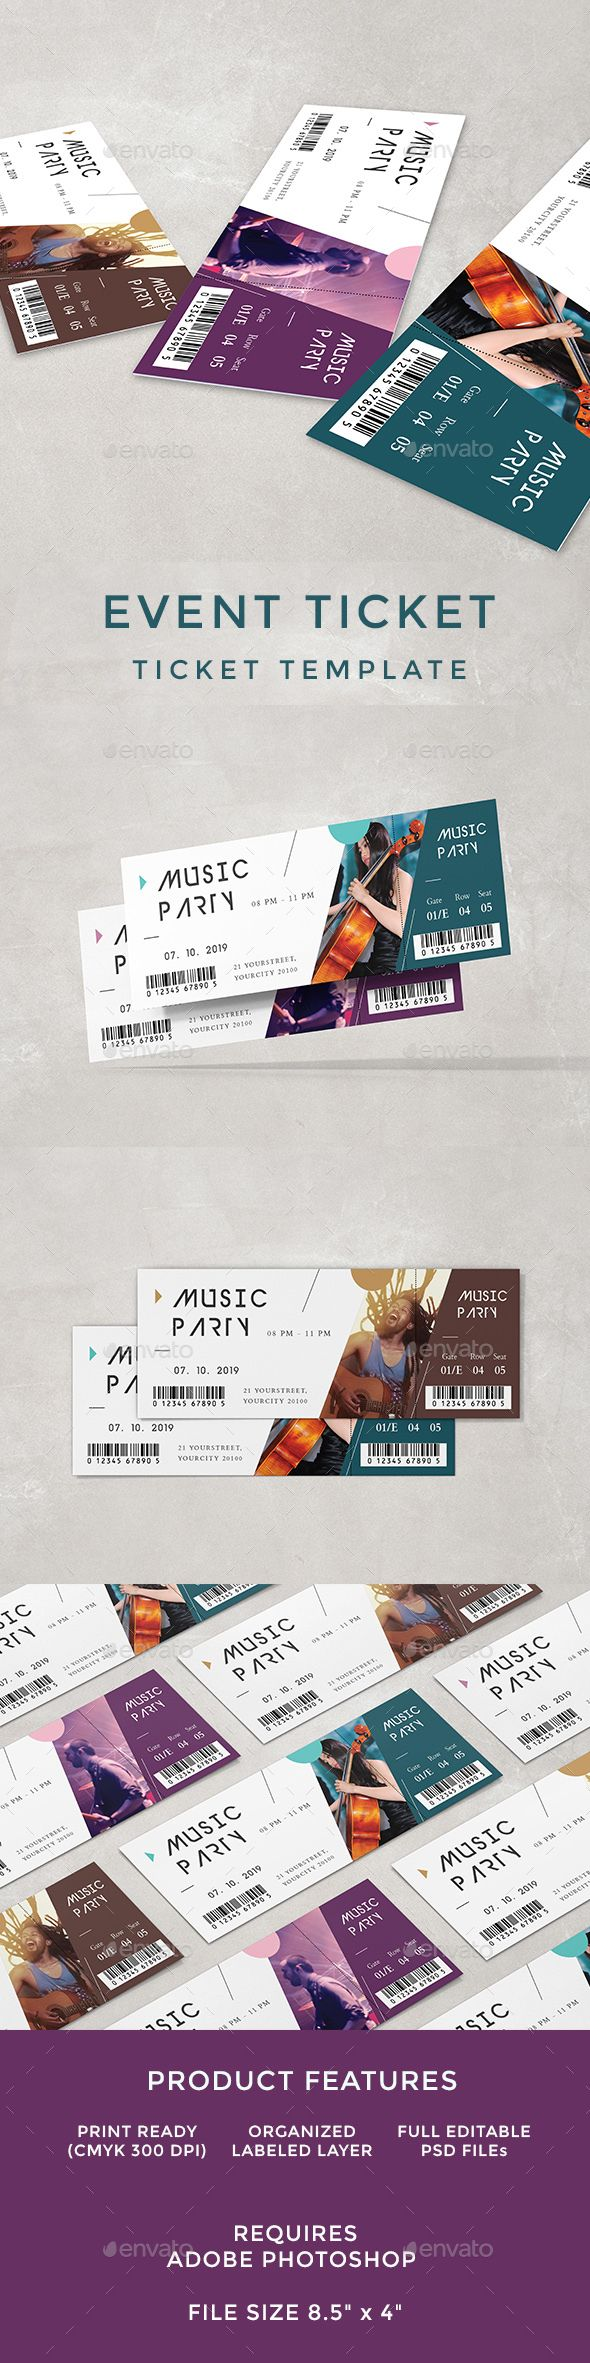 Concert Ticket Template Free Download Alluring Event Ticket  Event Ticket Print Templates And Template